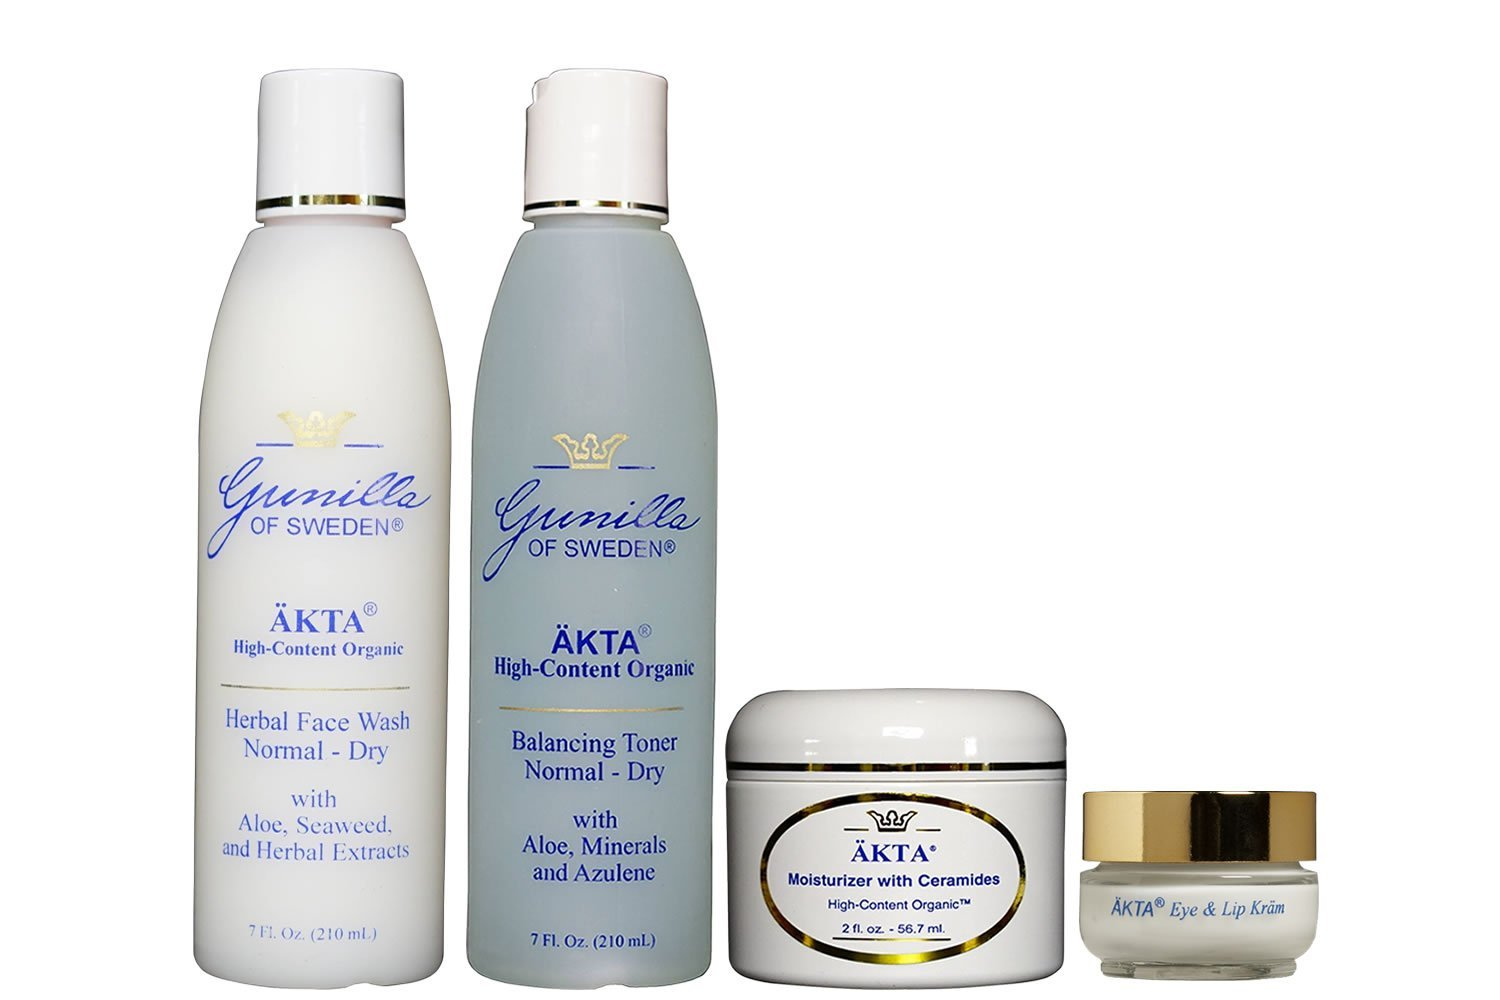 ÄKTA by Gunilla of Sweden Organic Skin Care System (Normal/Dry Skin): Based on Nutrient Rich Organic Aloe-Organic Botanical Extracts Provide Hydration and Anti-Aging Benefits- Alcohol and Oil-Free